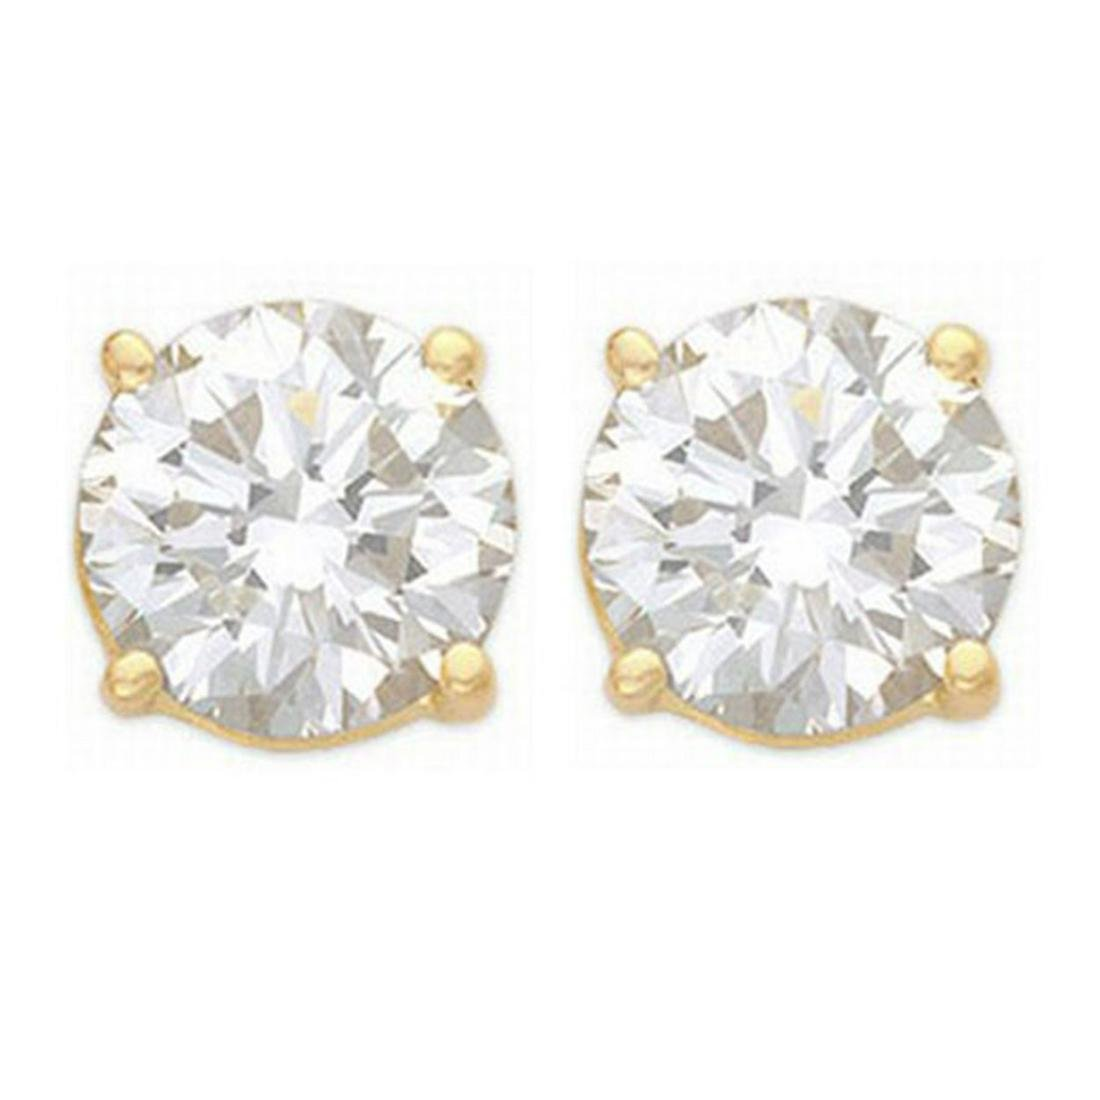 1.25 ctw VS/SI Diamond Stud Earrings 14K Yellow Gold -